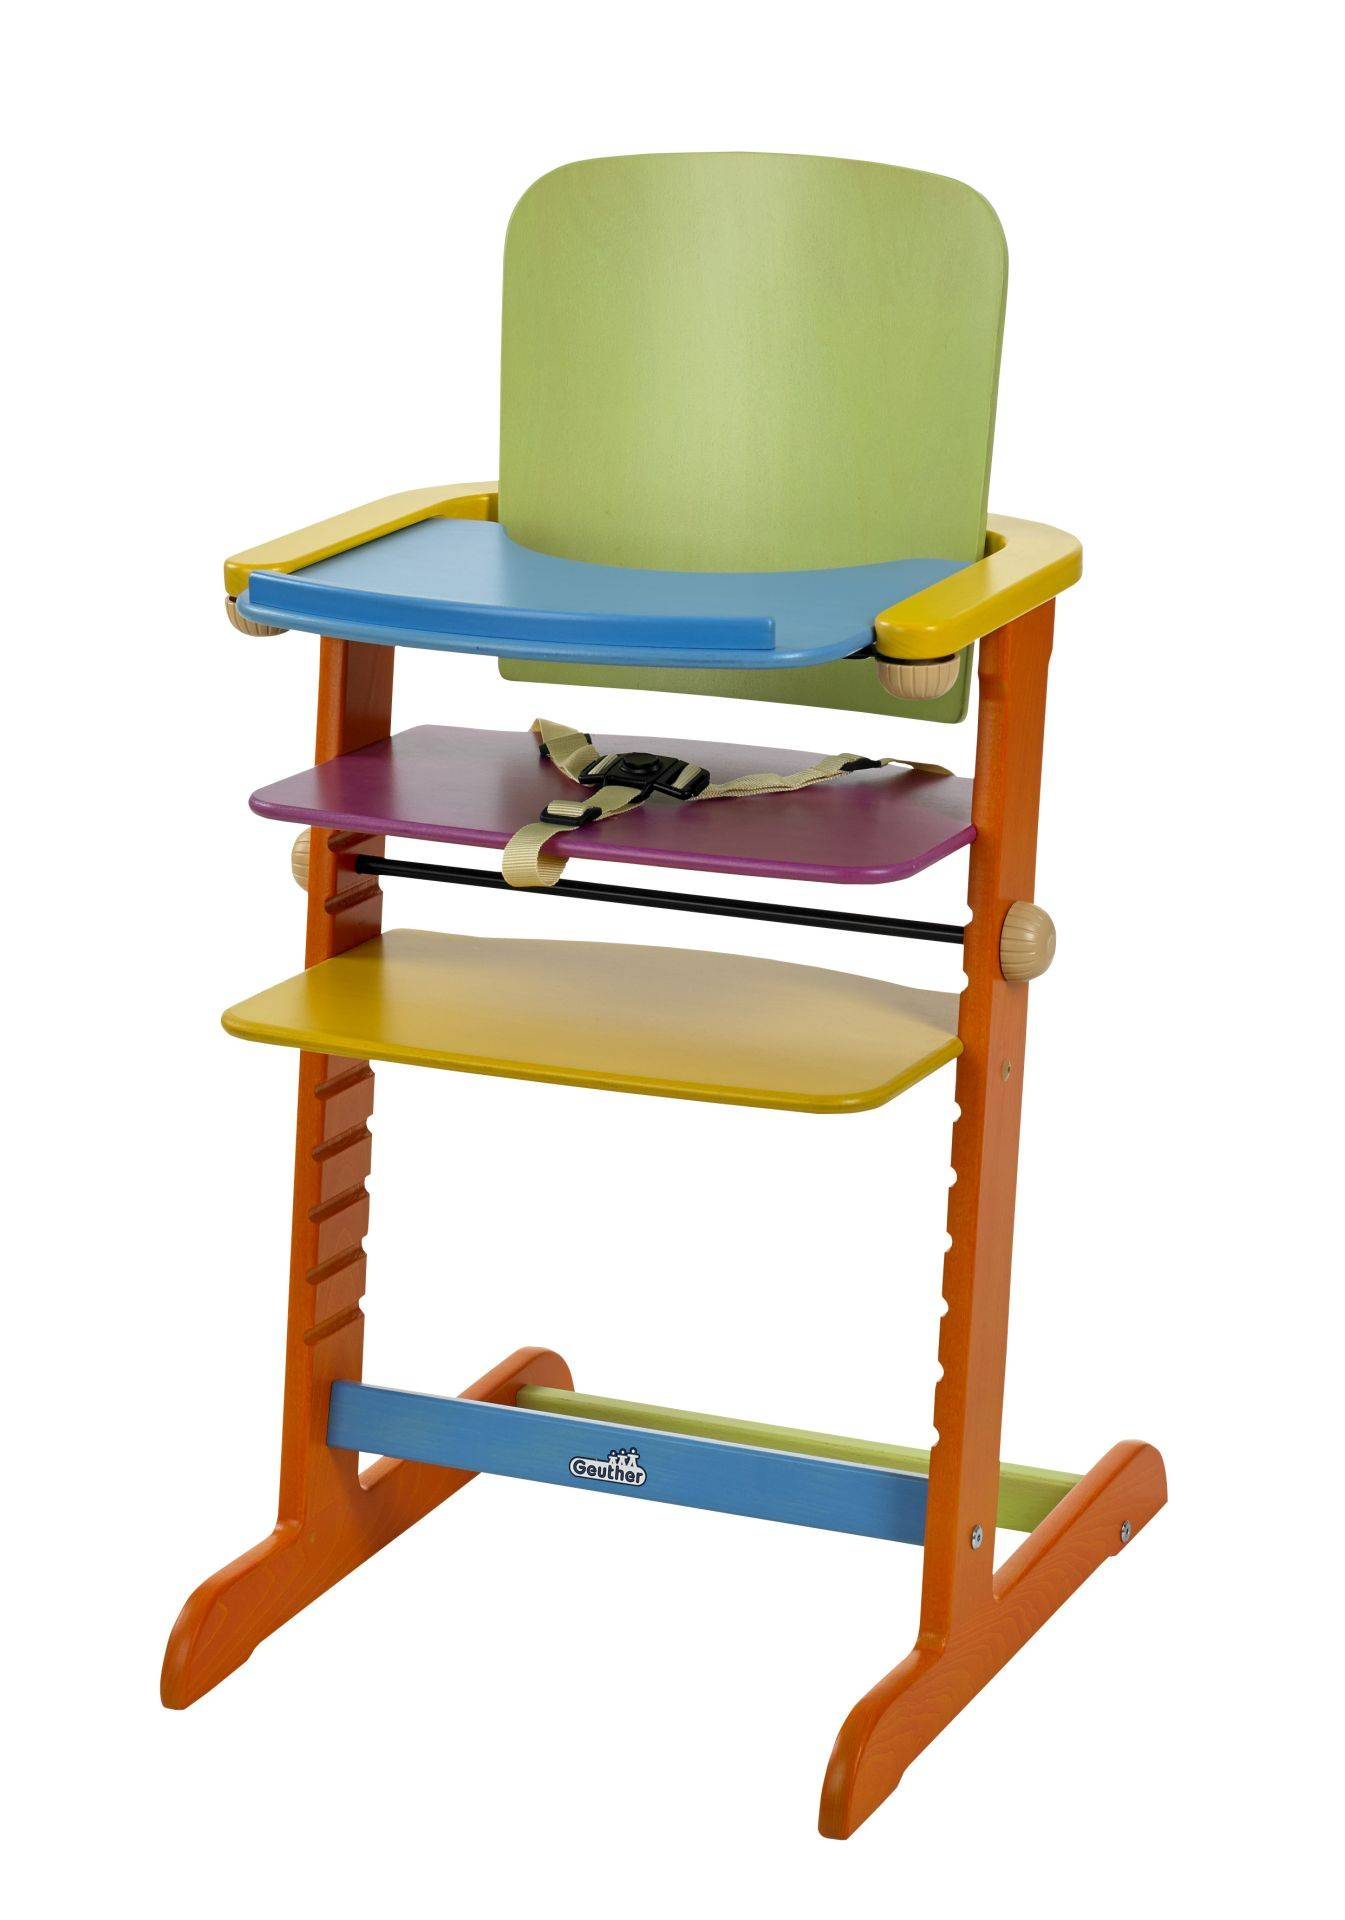 Geuther Family highchair; Bunt